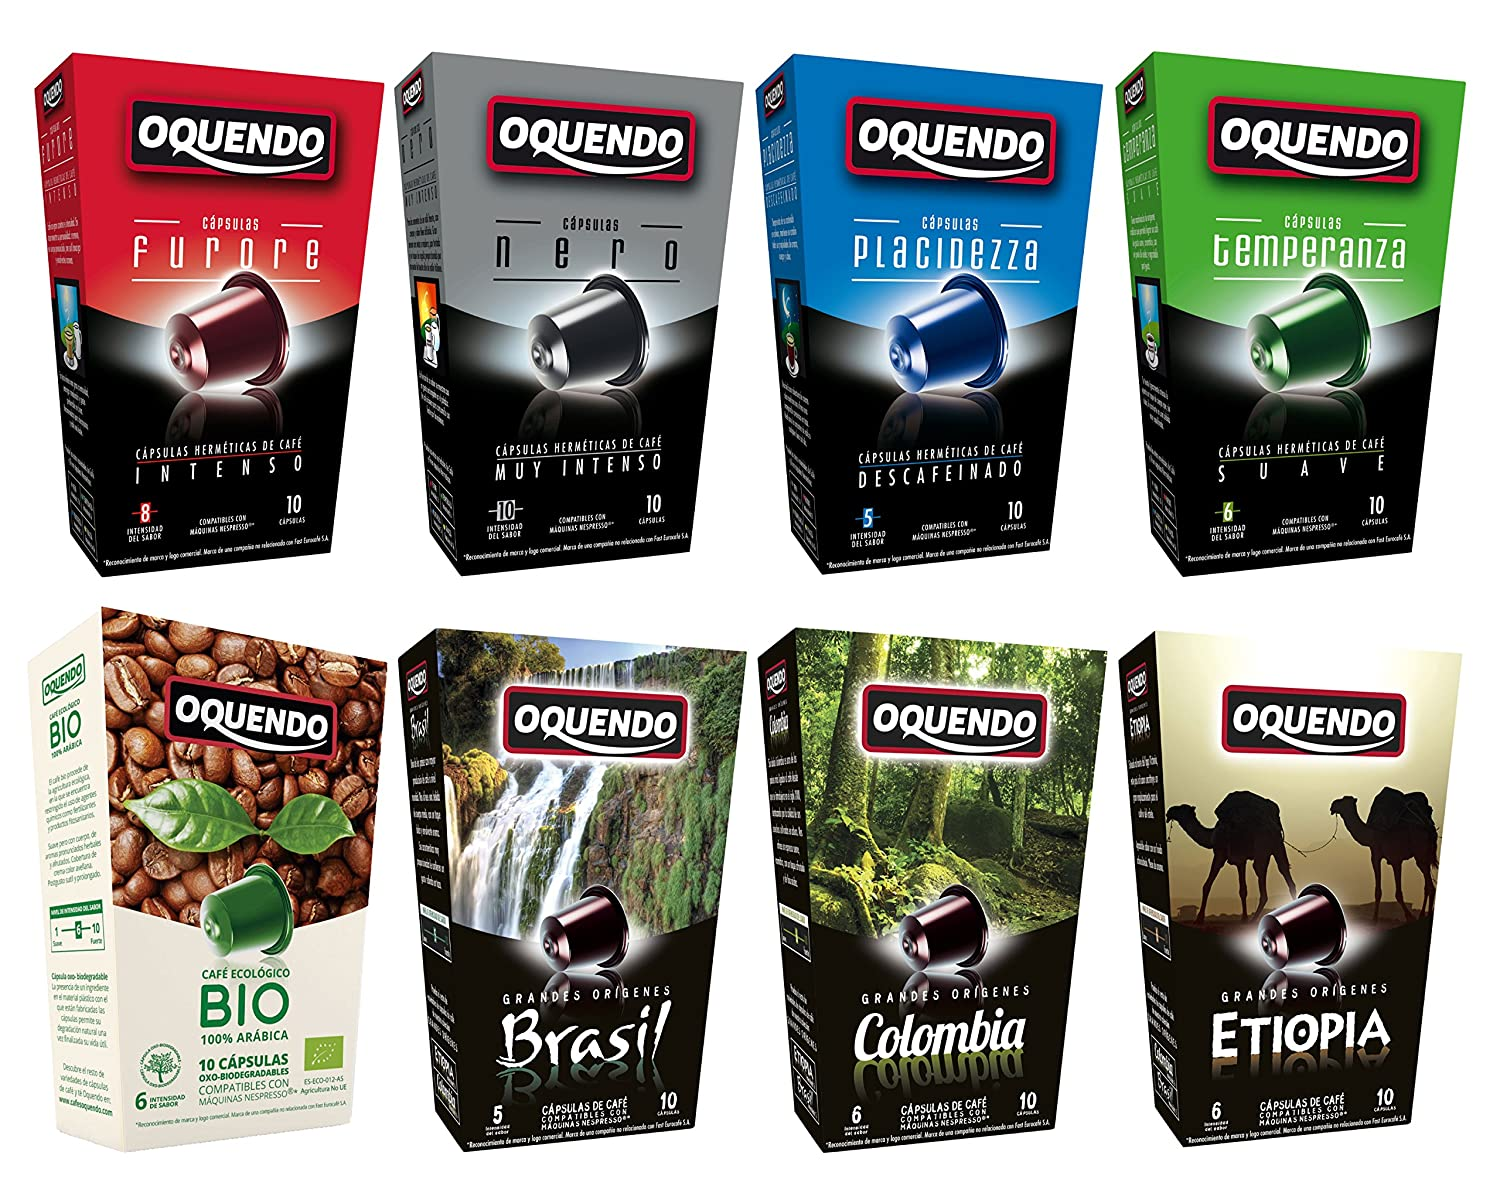 80 Café Oquendo Compatible Coffee Capsules - 8 Flavor Variety Pack - 8 Boxes 10 count per box - 80 cups- Premium Quality Nespresso Coffee - 60 Day ...